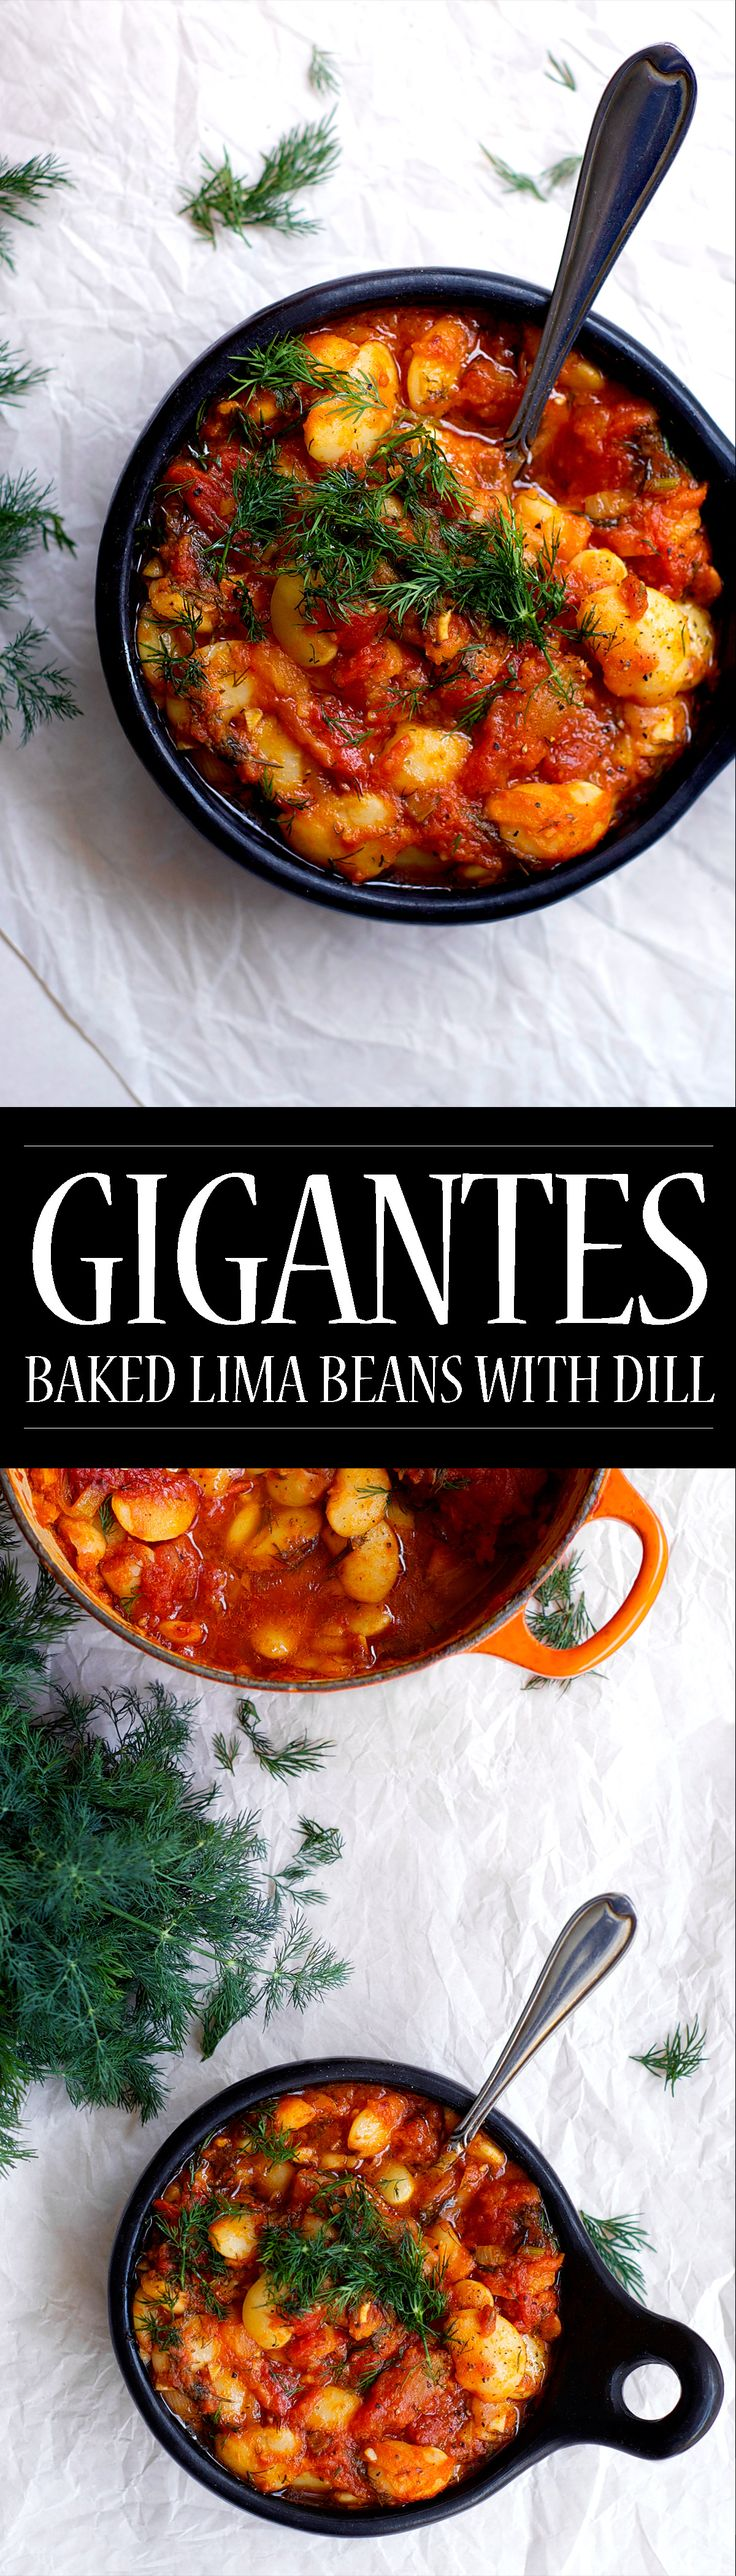 Gigantes: Baked Lima Beans With Dill! A lighter take on the Greek classic, but just as easy and comforting. A rich, garlic spiked tomato sugo with thyme, dill, and creamy lima (butter) beans. Vegan and gluten free.